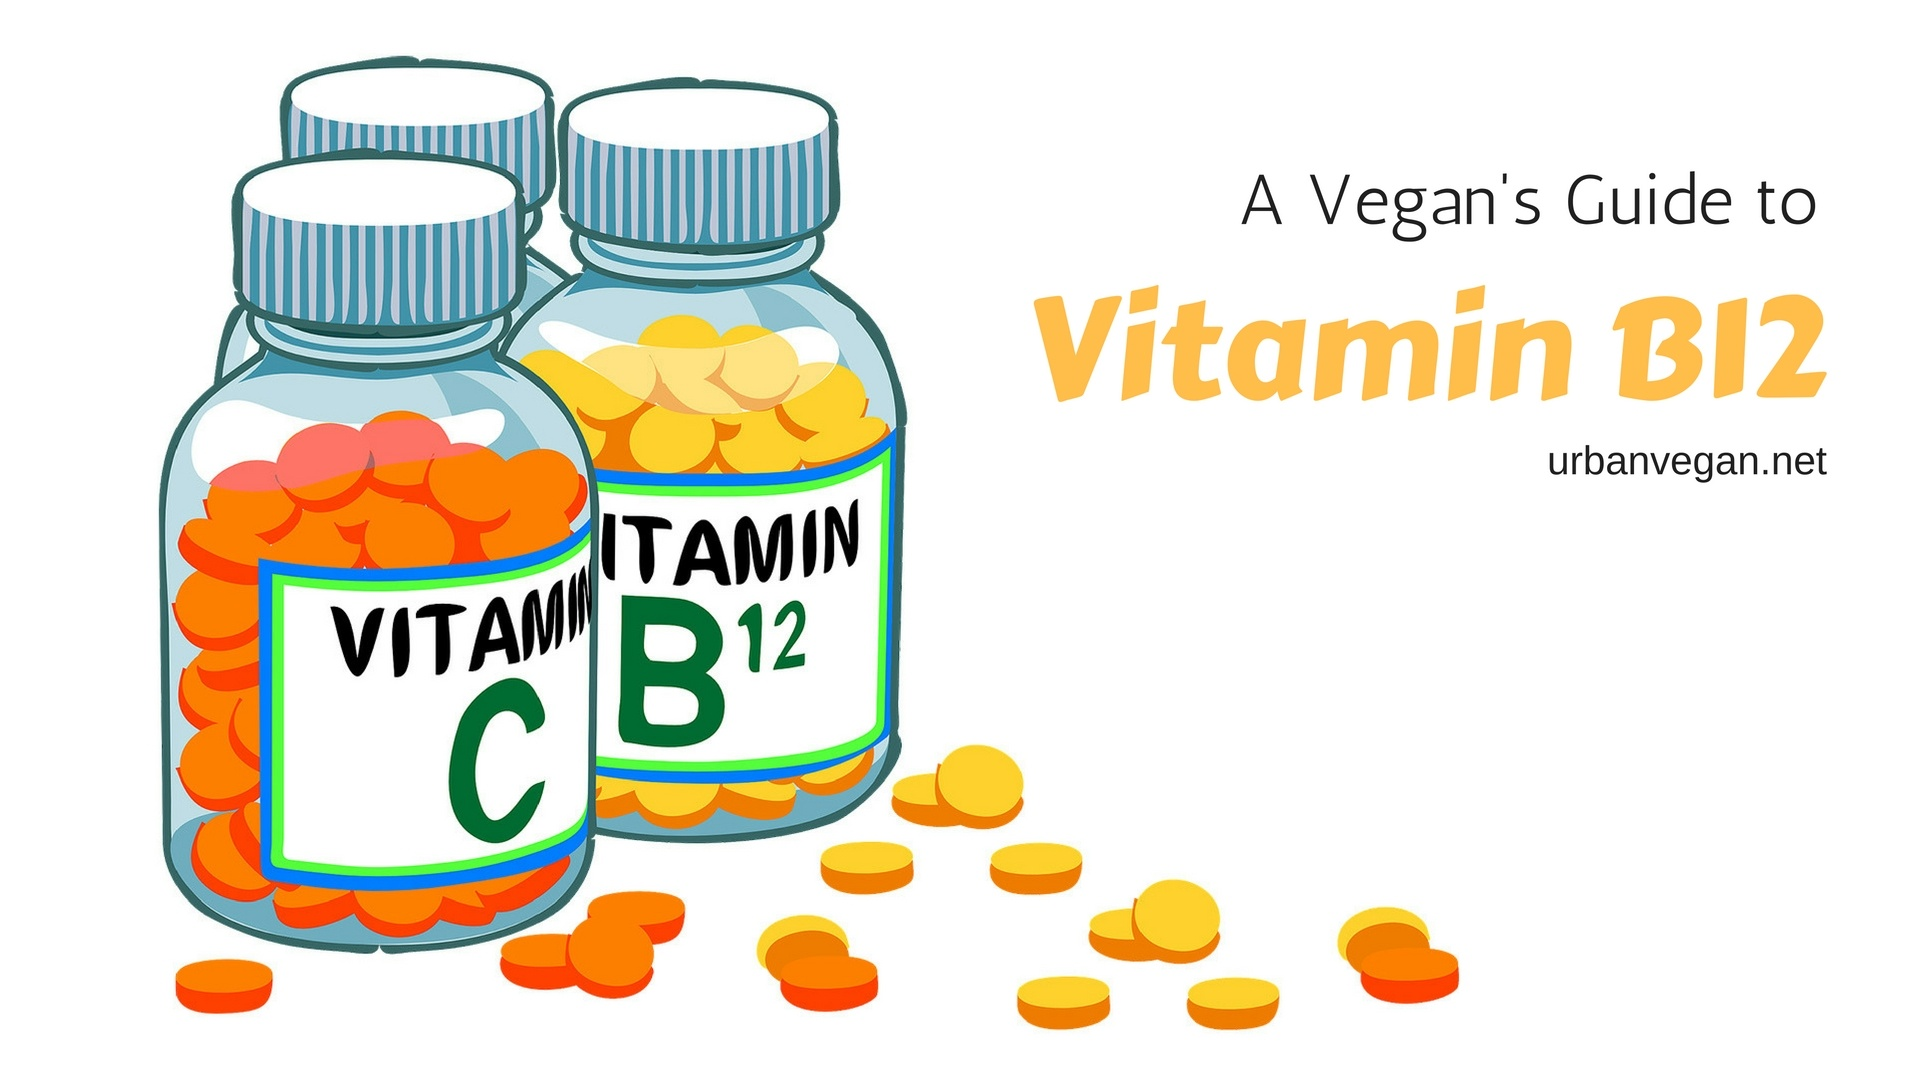 Vitamin B12 Vegan